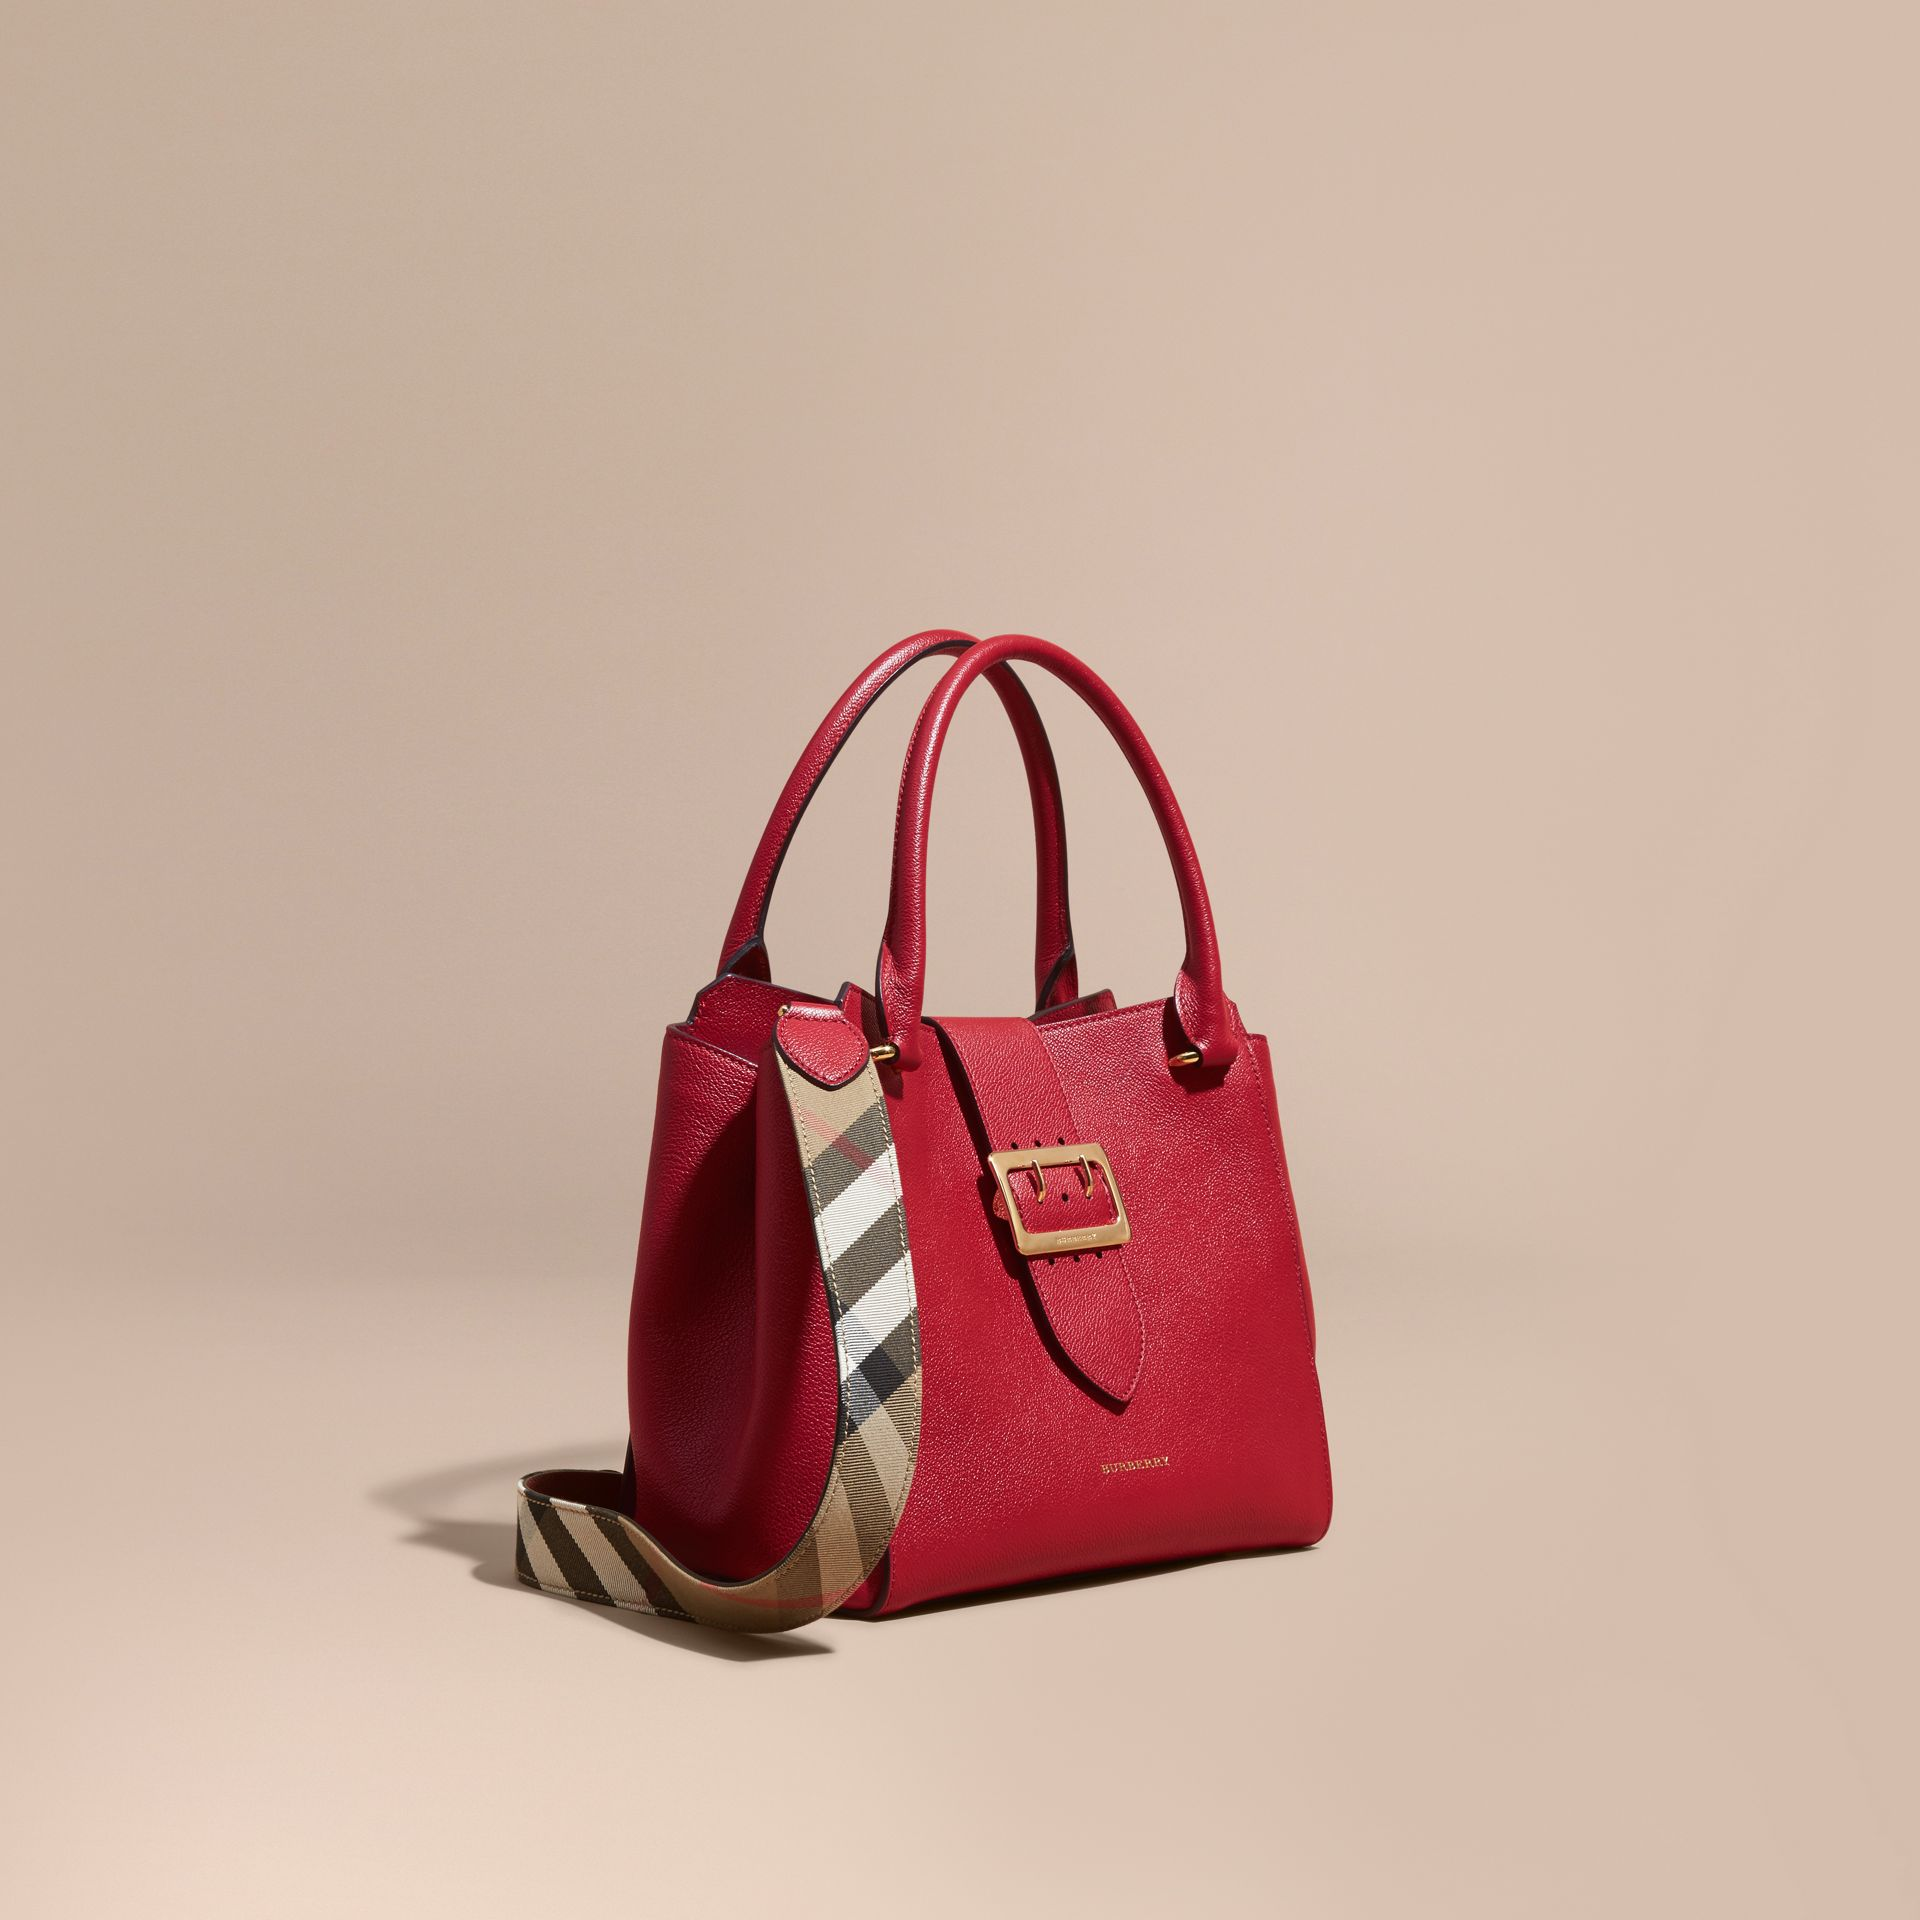 Parade red The Medium Buckle Tote in Grainy Leather Parade Red - gallery image 1